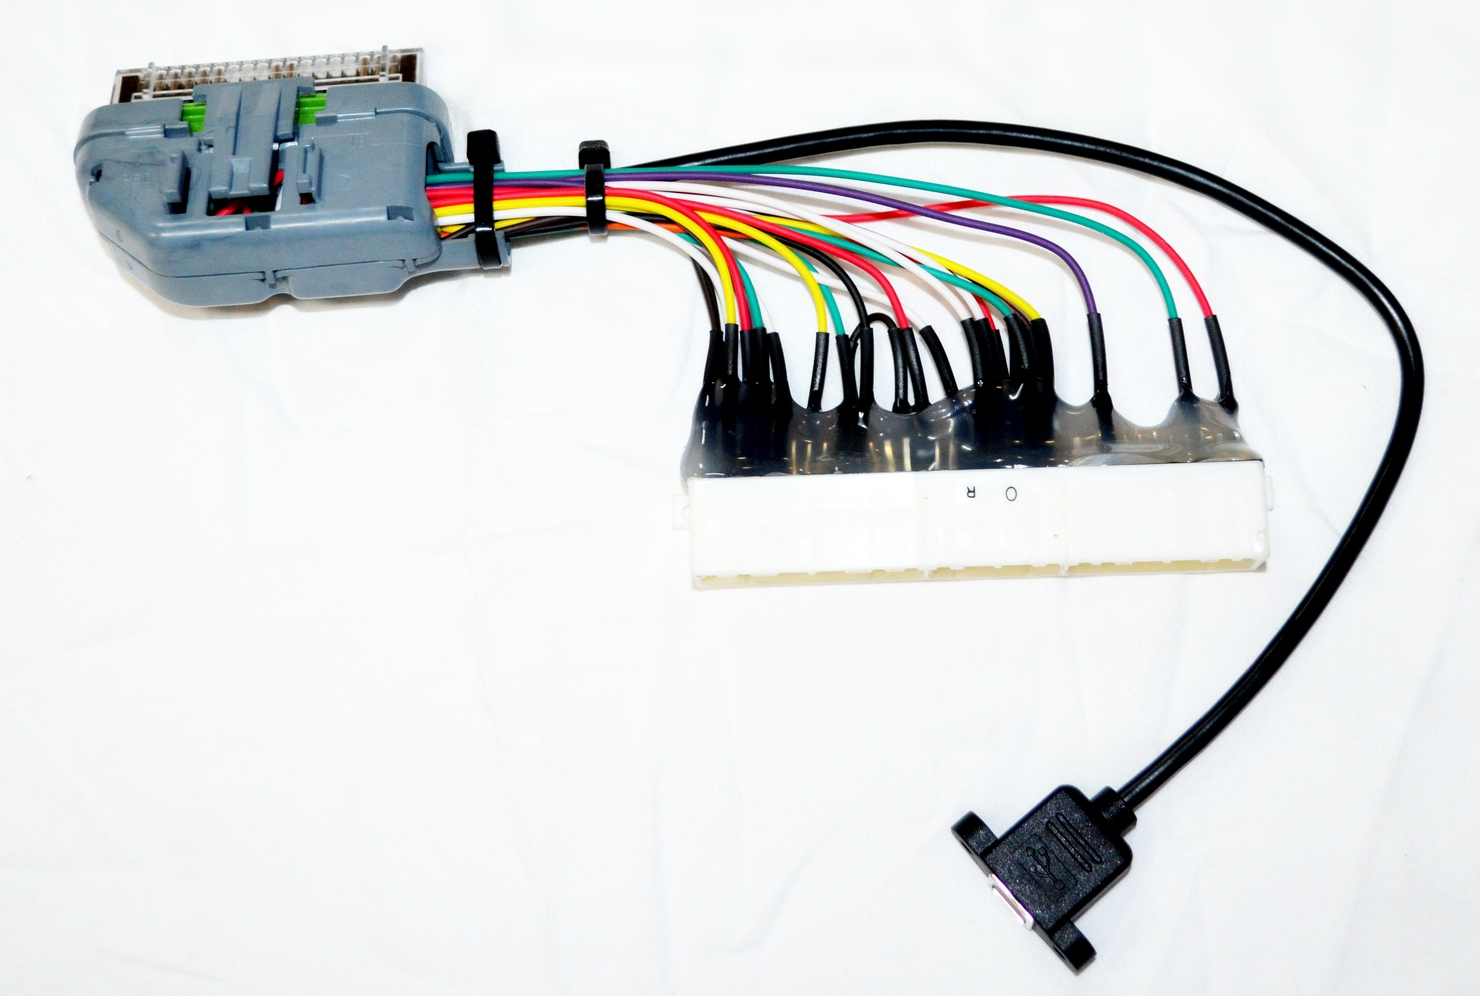 hight resolution of e46 ls1 wiring harness wiring library e46 2jz wiring harness